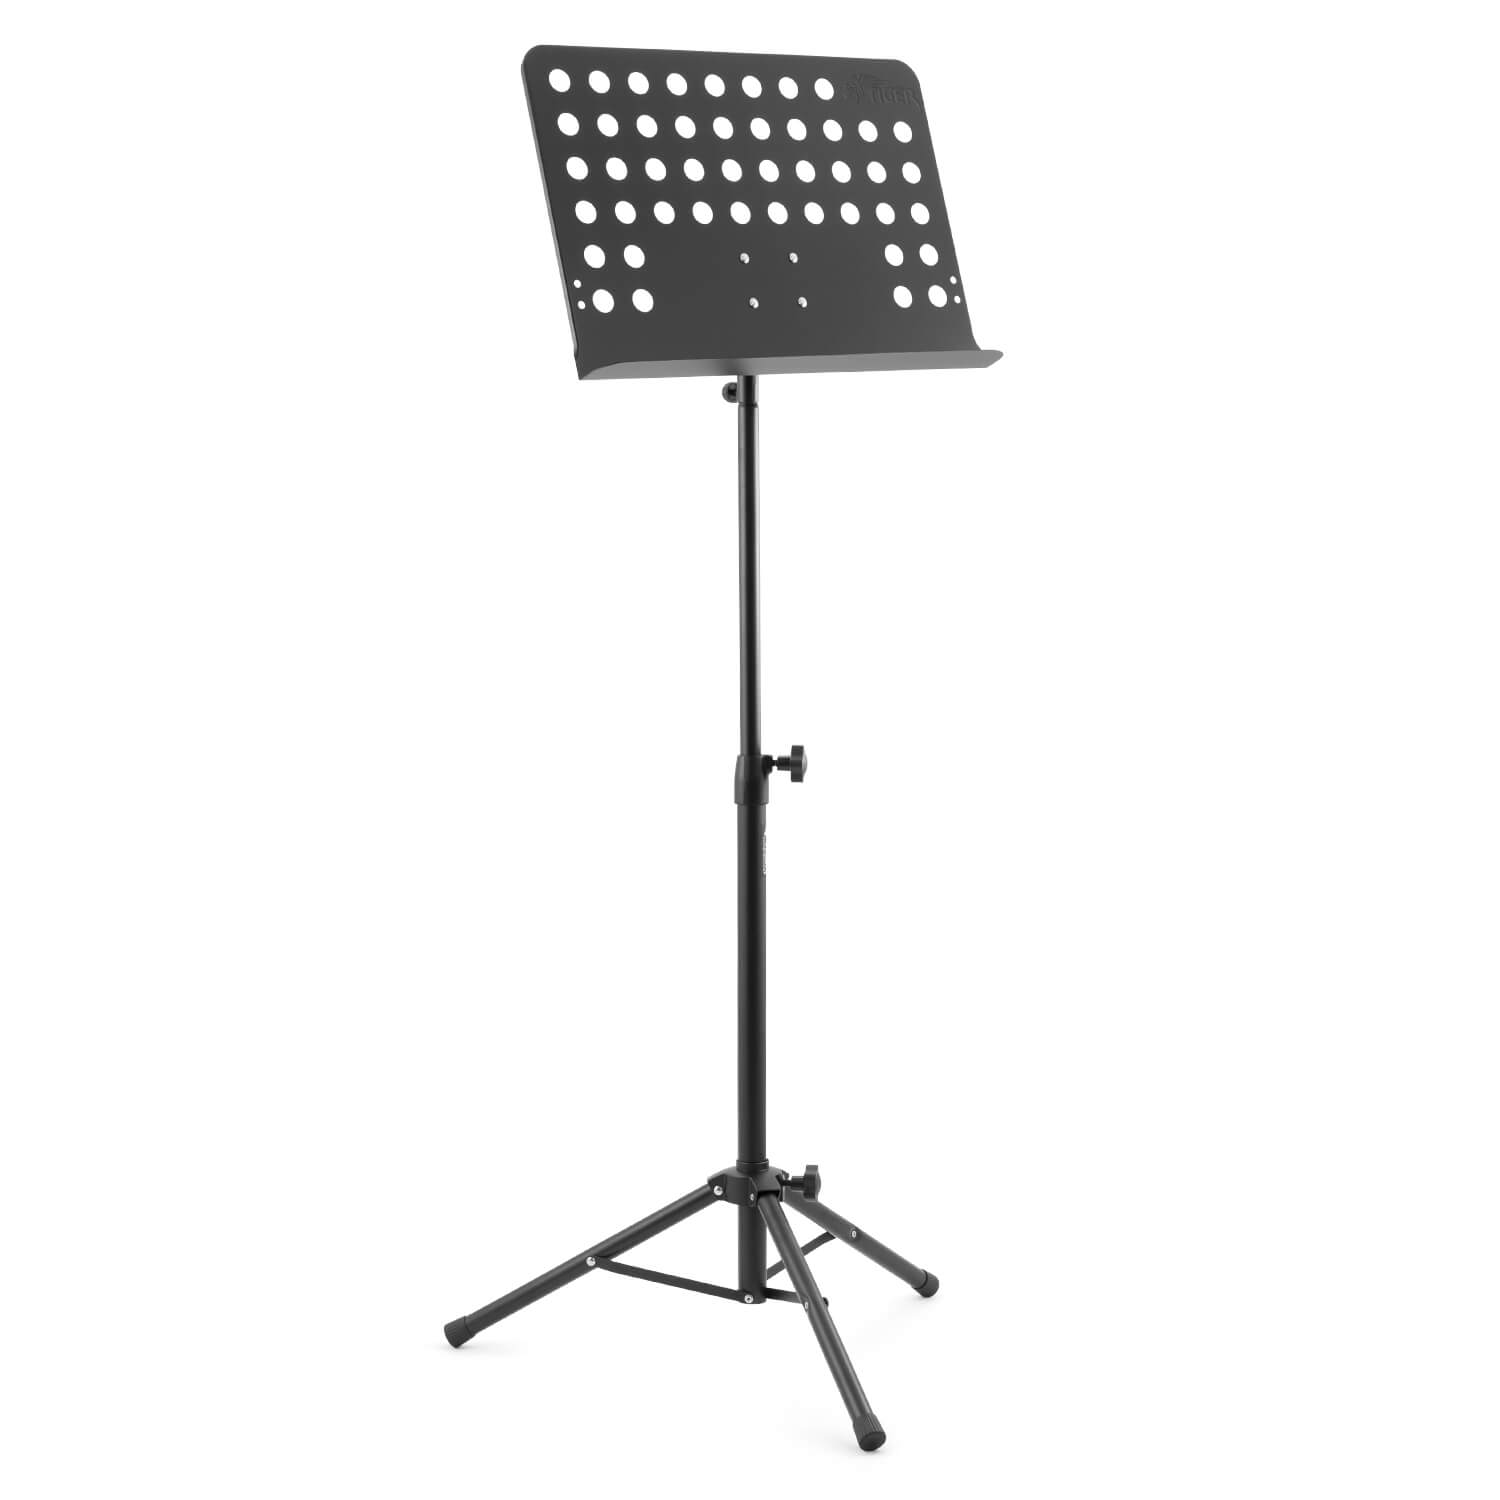 heavy duty orchestral conductor sheet music stand by tiger ebay. Black Bedroom Furniture Sets. Home Design Ideas